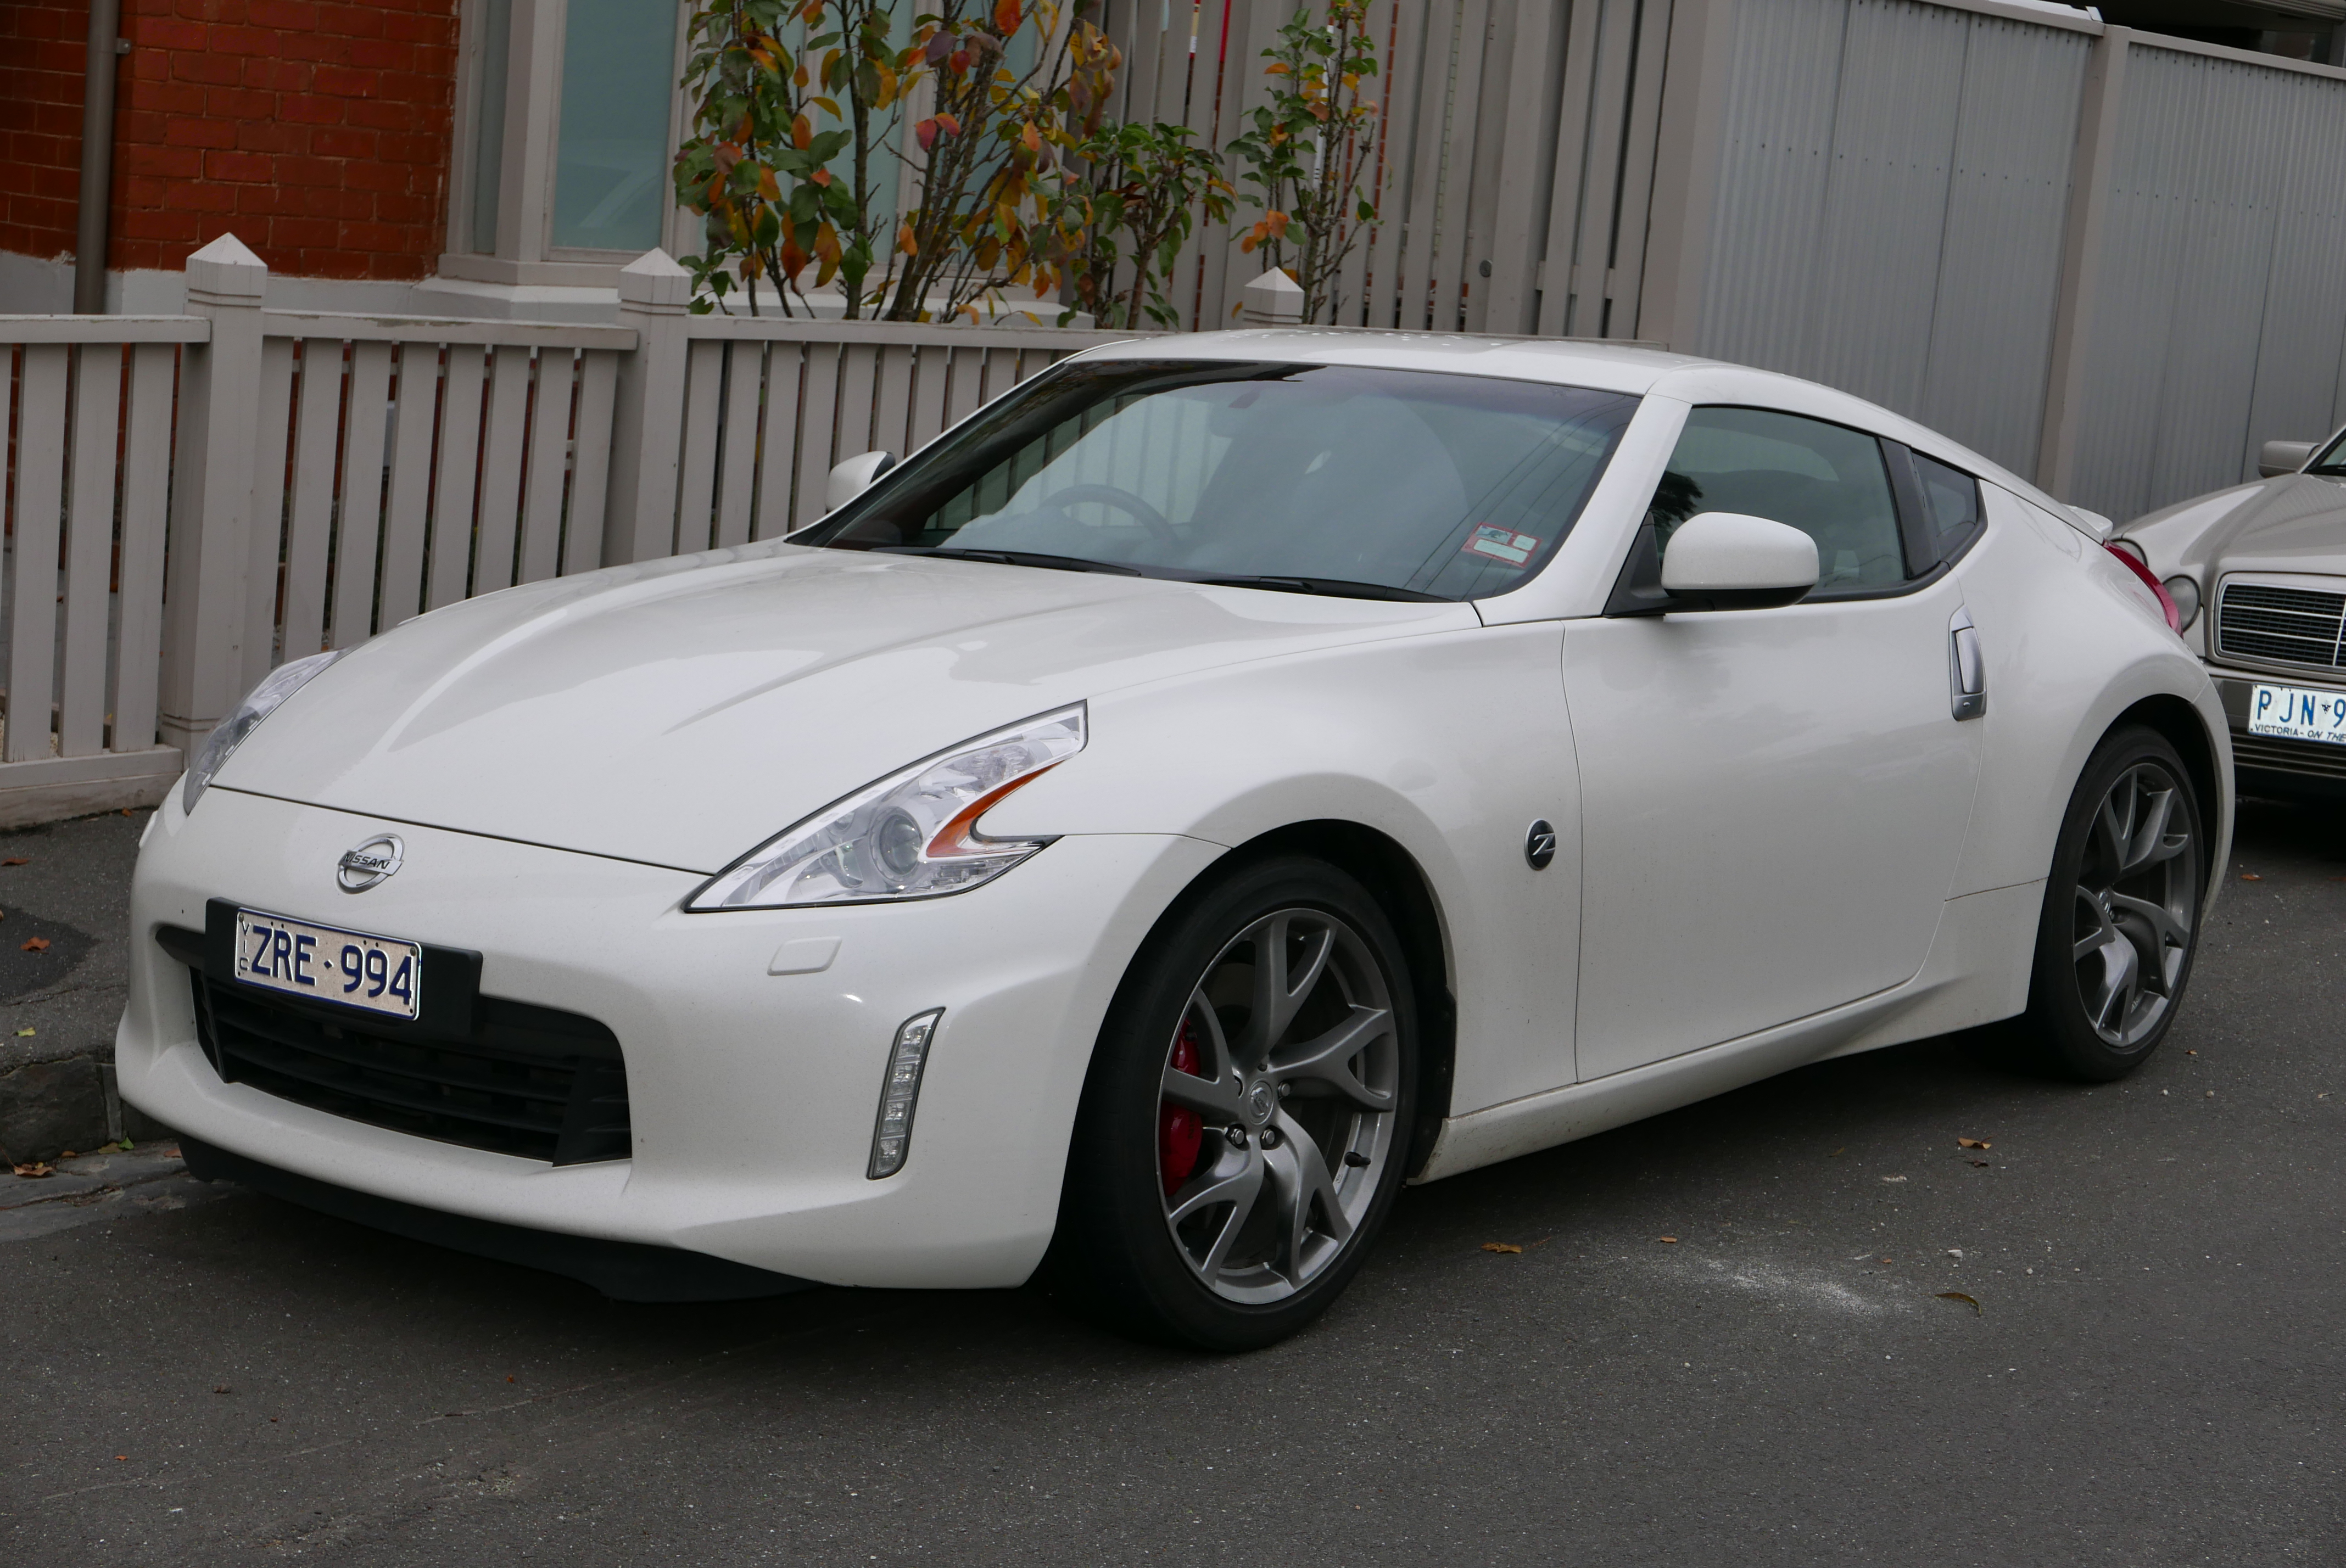 File2013 Nissan 370z (z34 My135) Coupe (20150618) 01